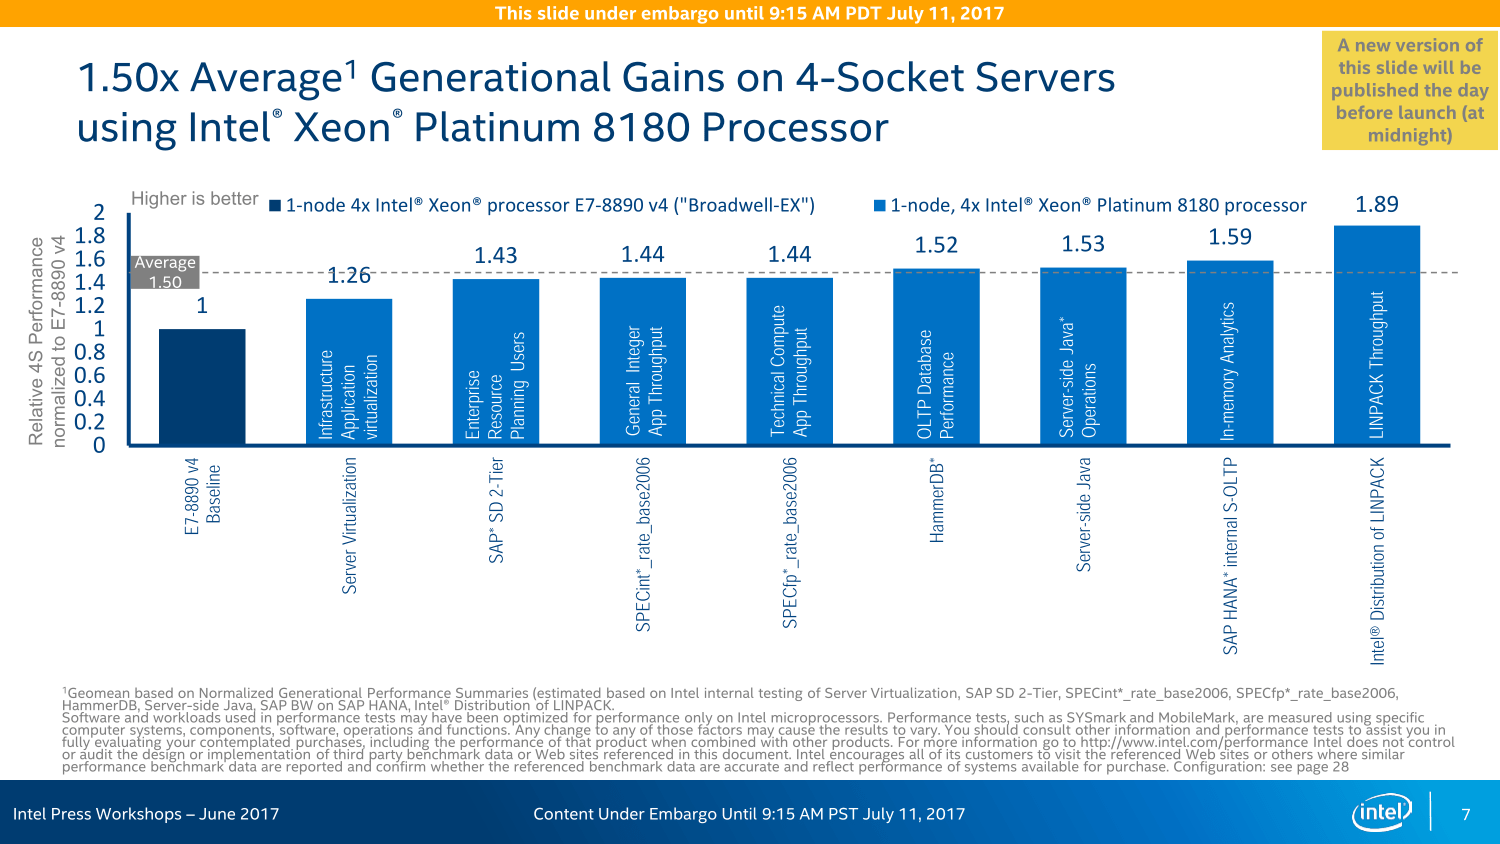 Intel Xeon Performance Overview